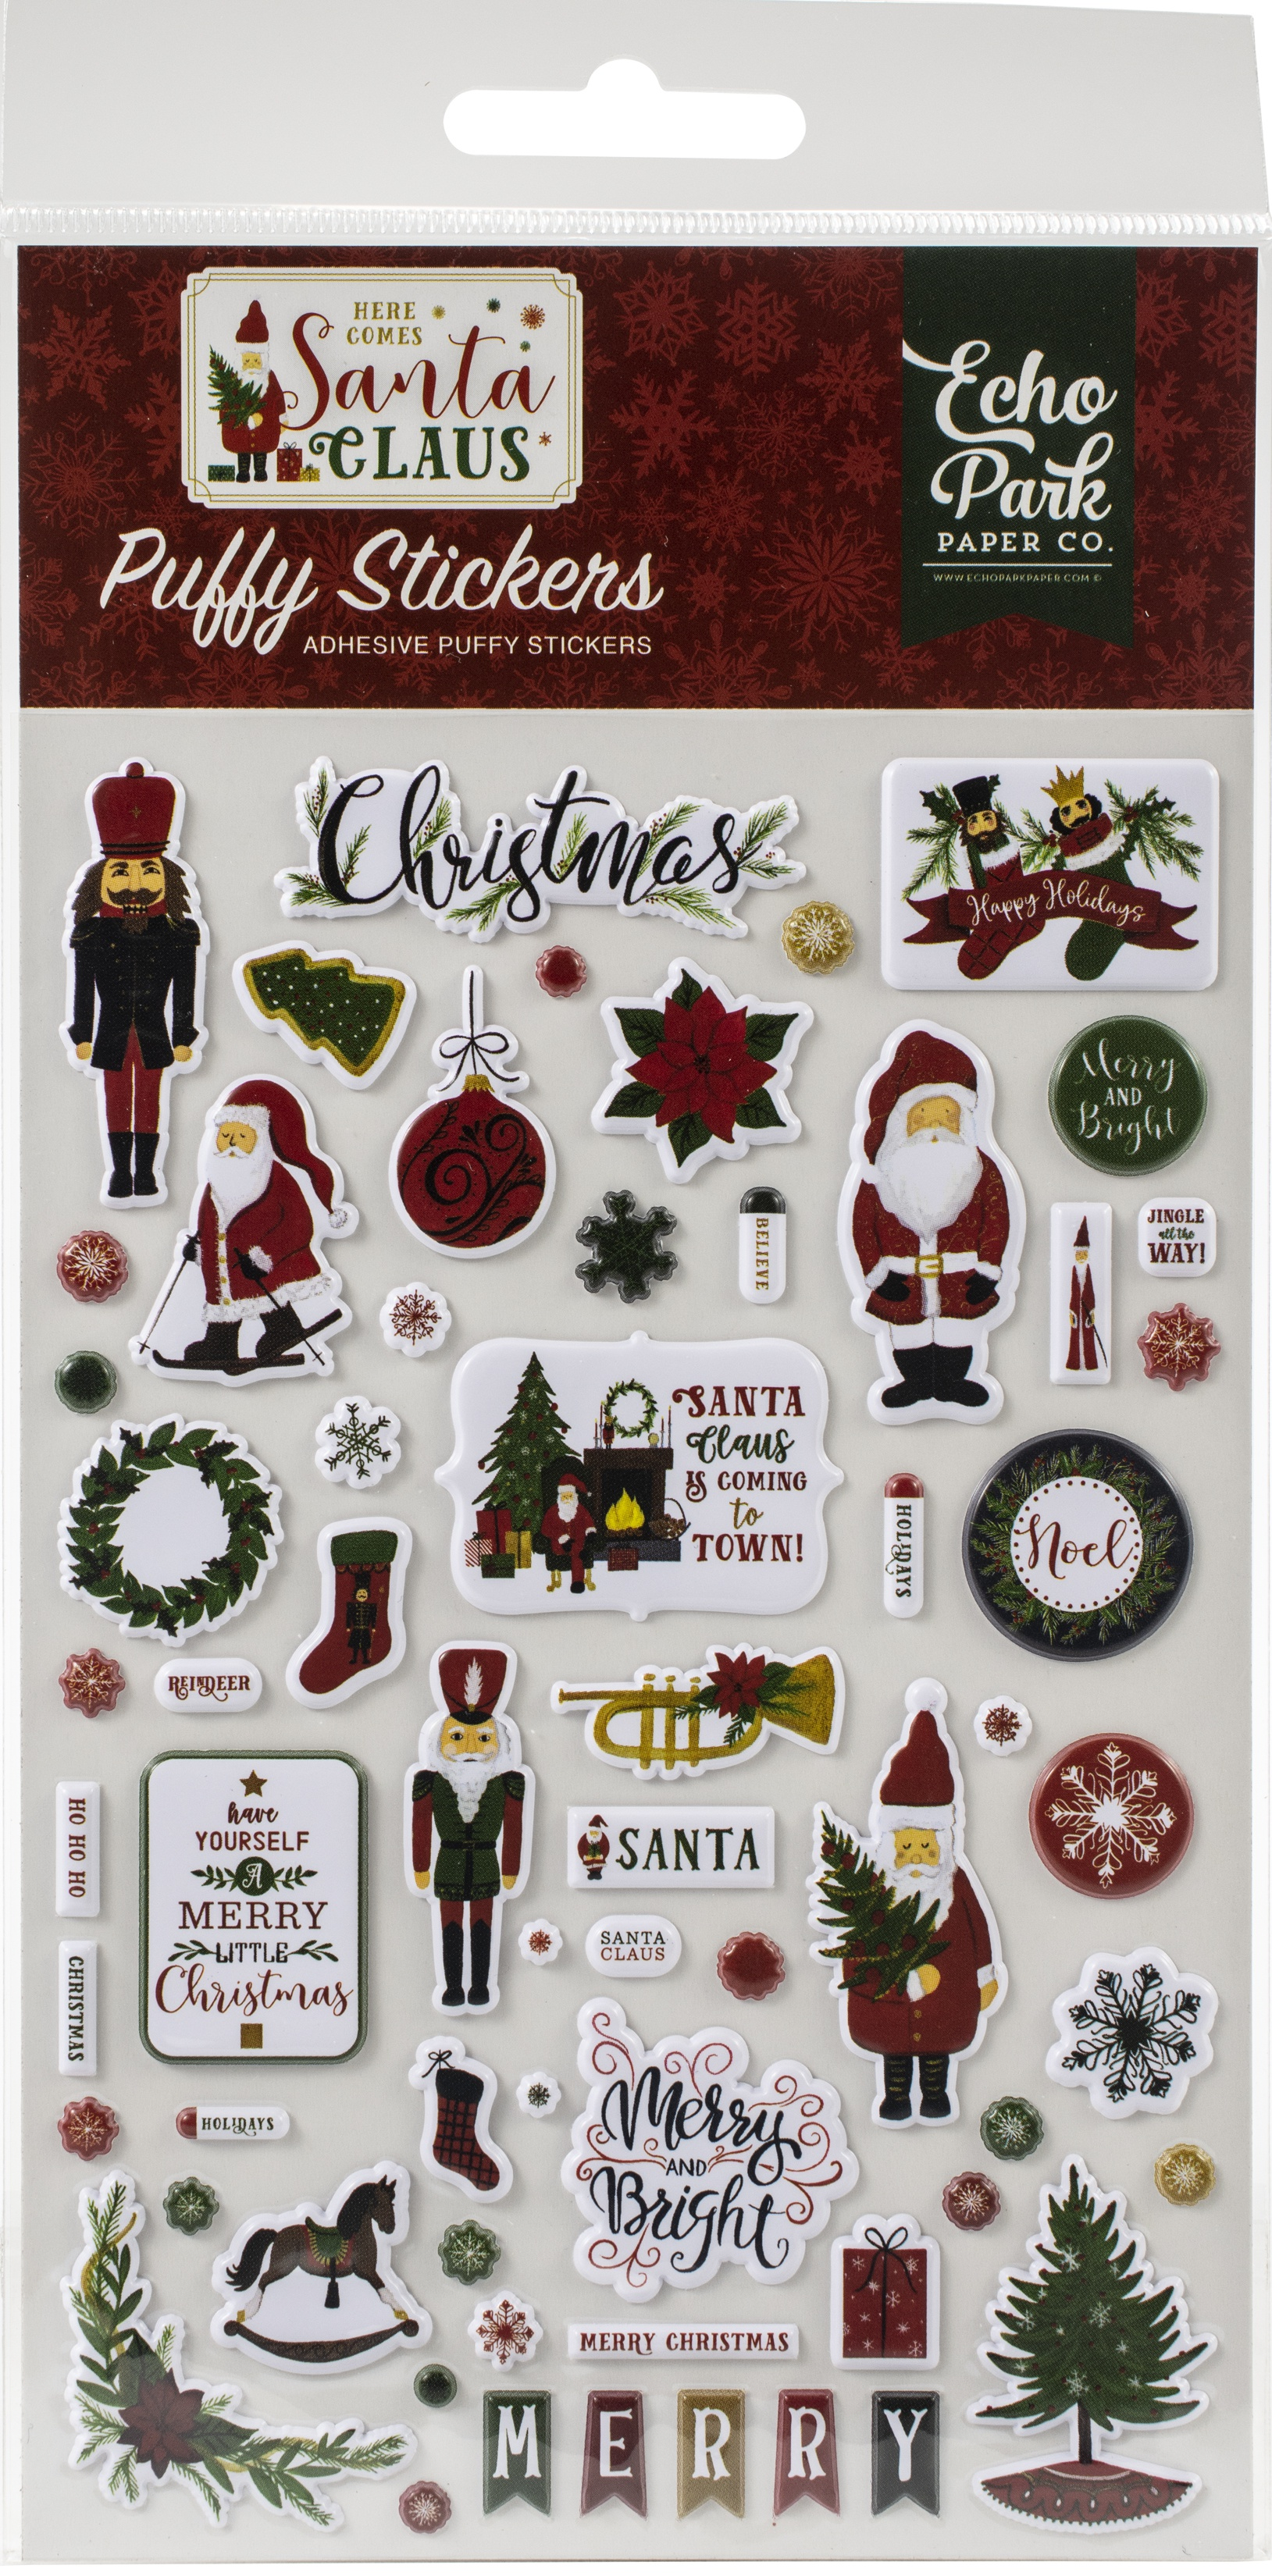 Here Comes Santa Claus Puffy Stickers-